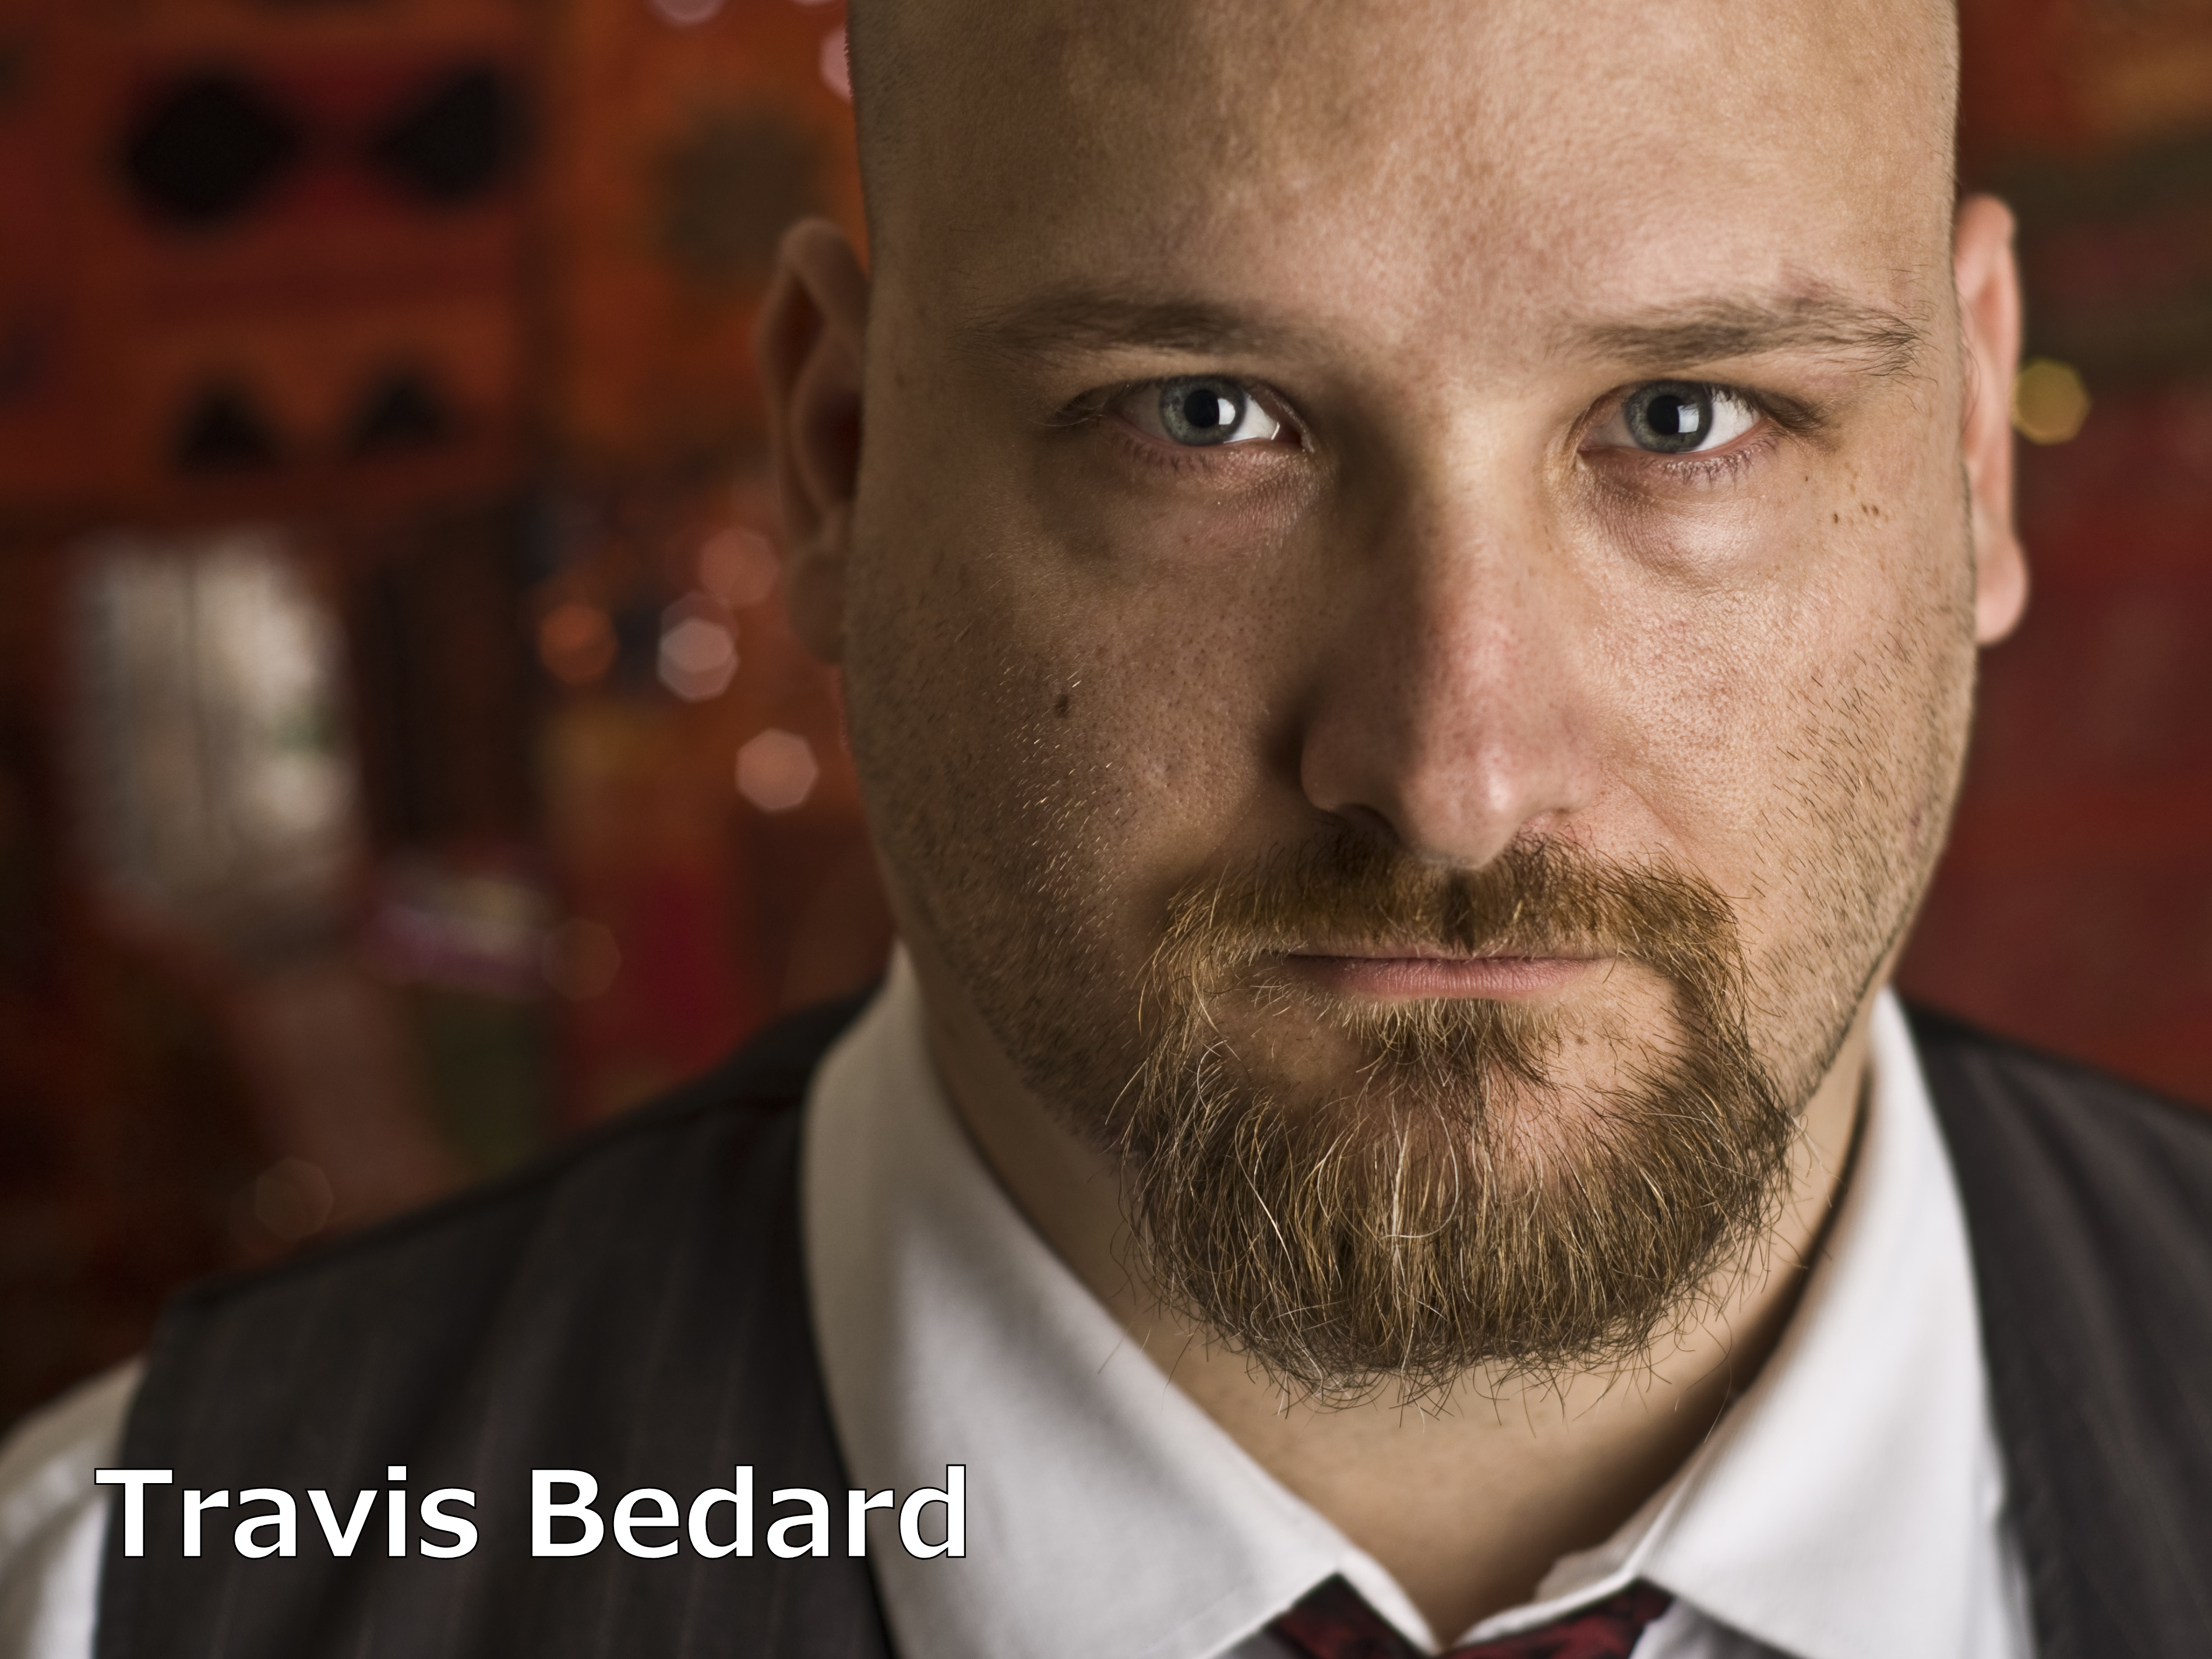 Travis Bedard Headshot 2012